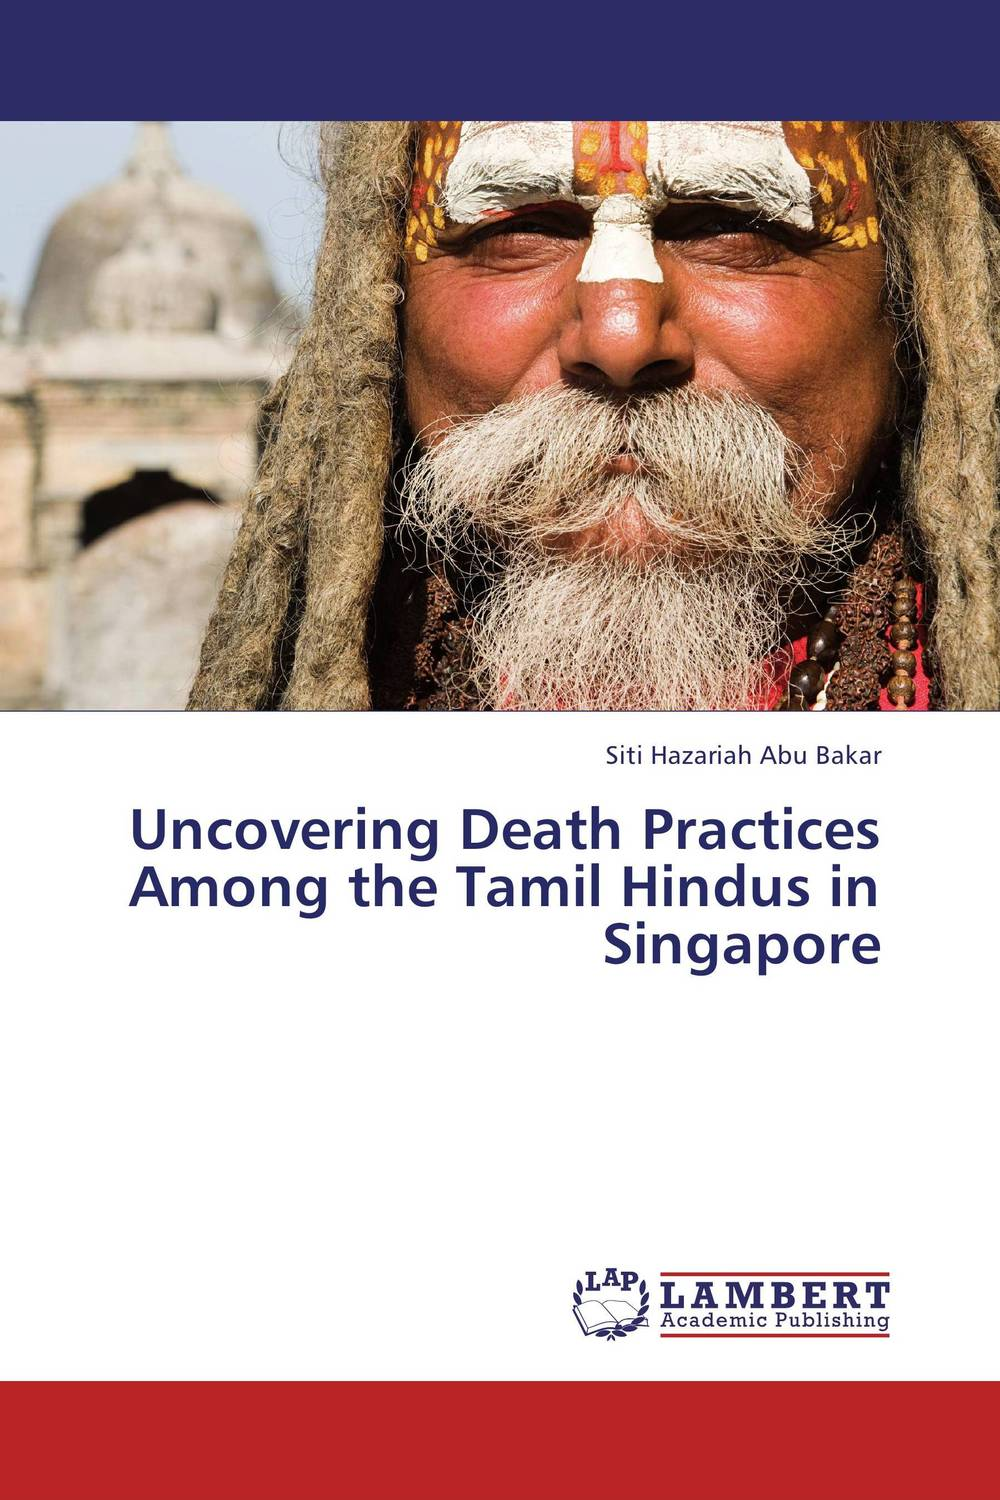 цена на Uncovering Death Practices Among the Tamil Hindus in Singapore